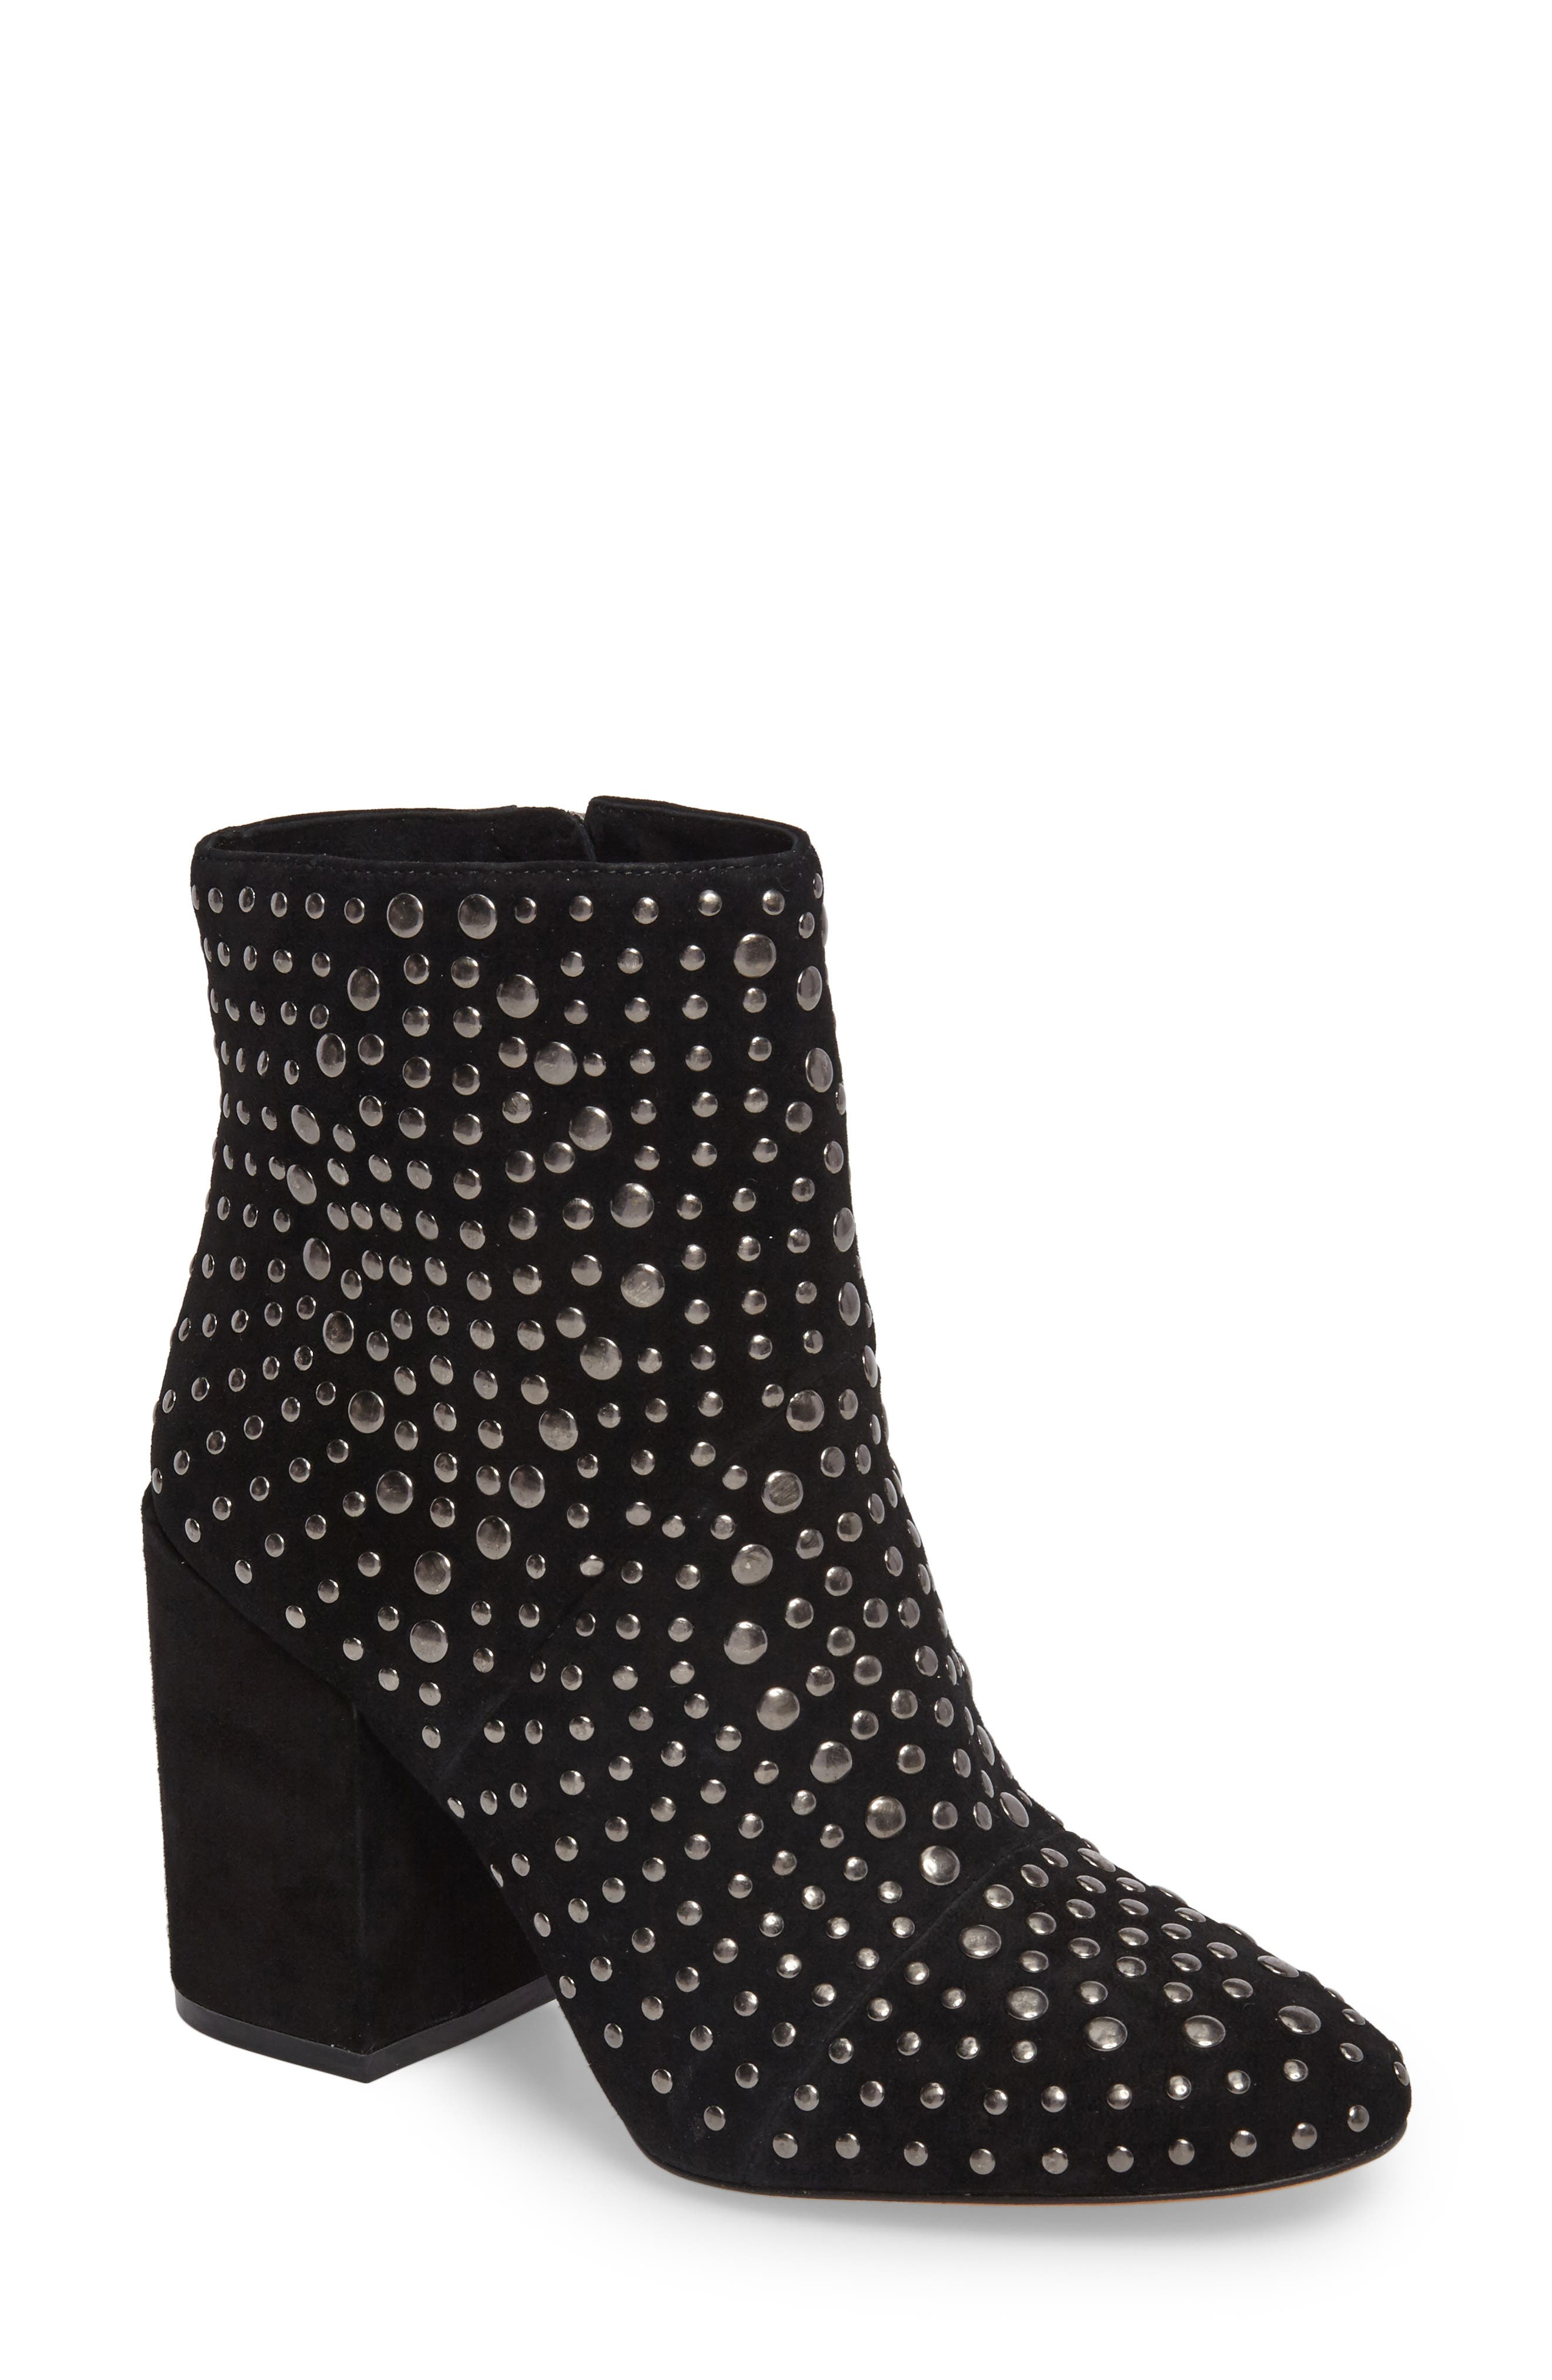 Alternate Image 1 Selected - Vince Camuto Drista Stud Bootie (Women)